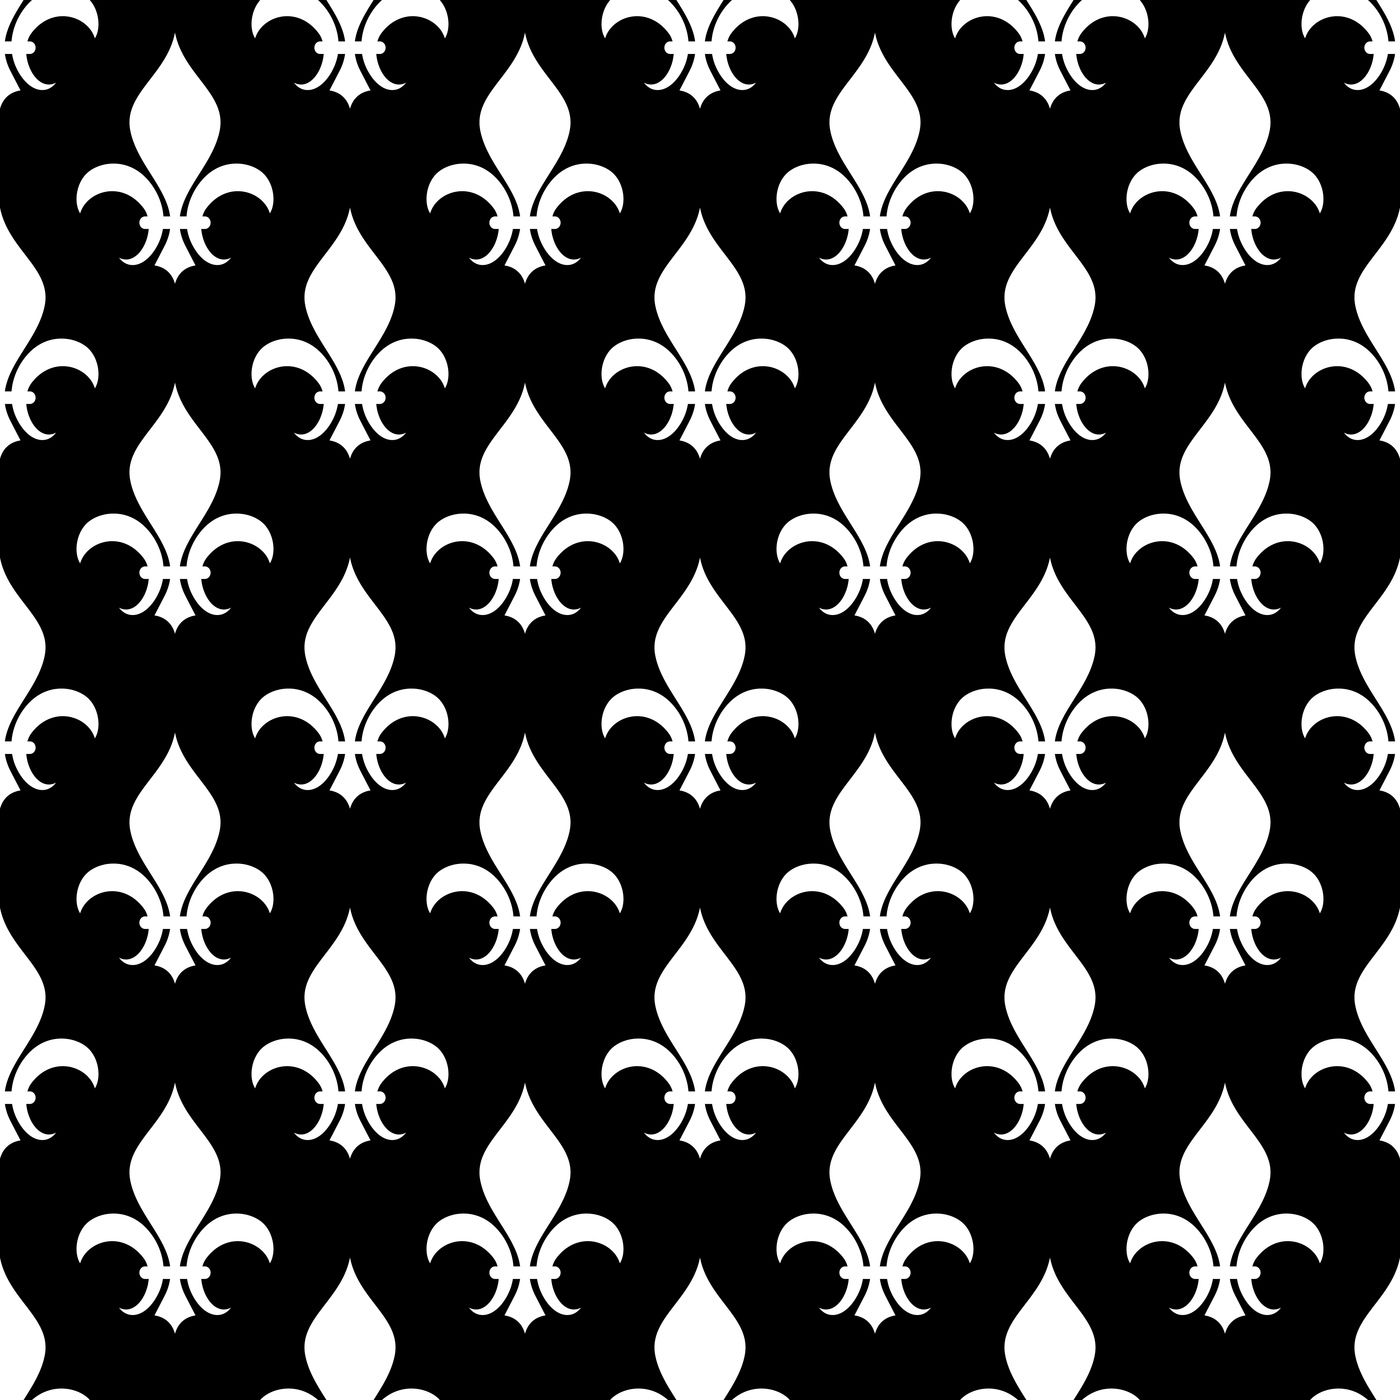 Vector Fleur De Lis Seamless Pattern In Black And White By Microvector Thehungryjpeg Com